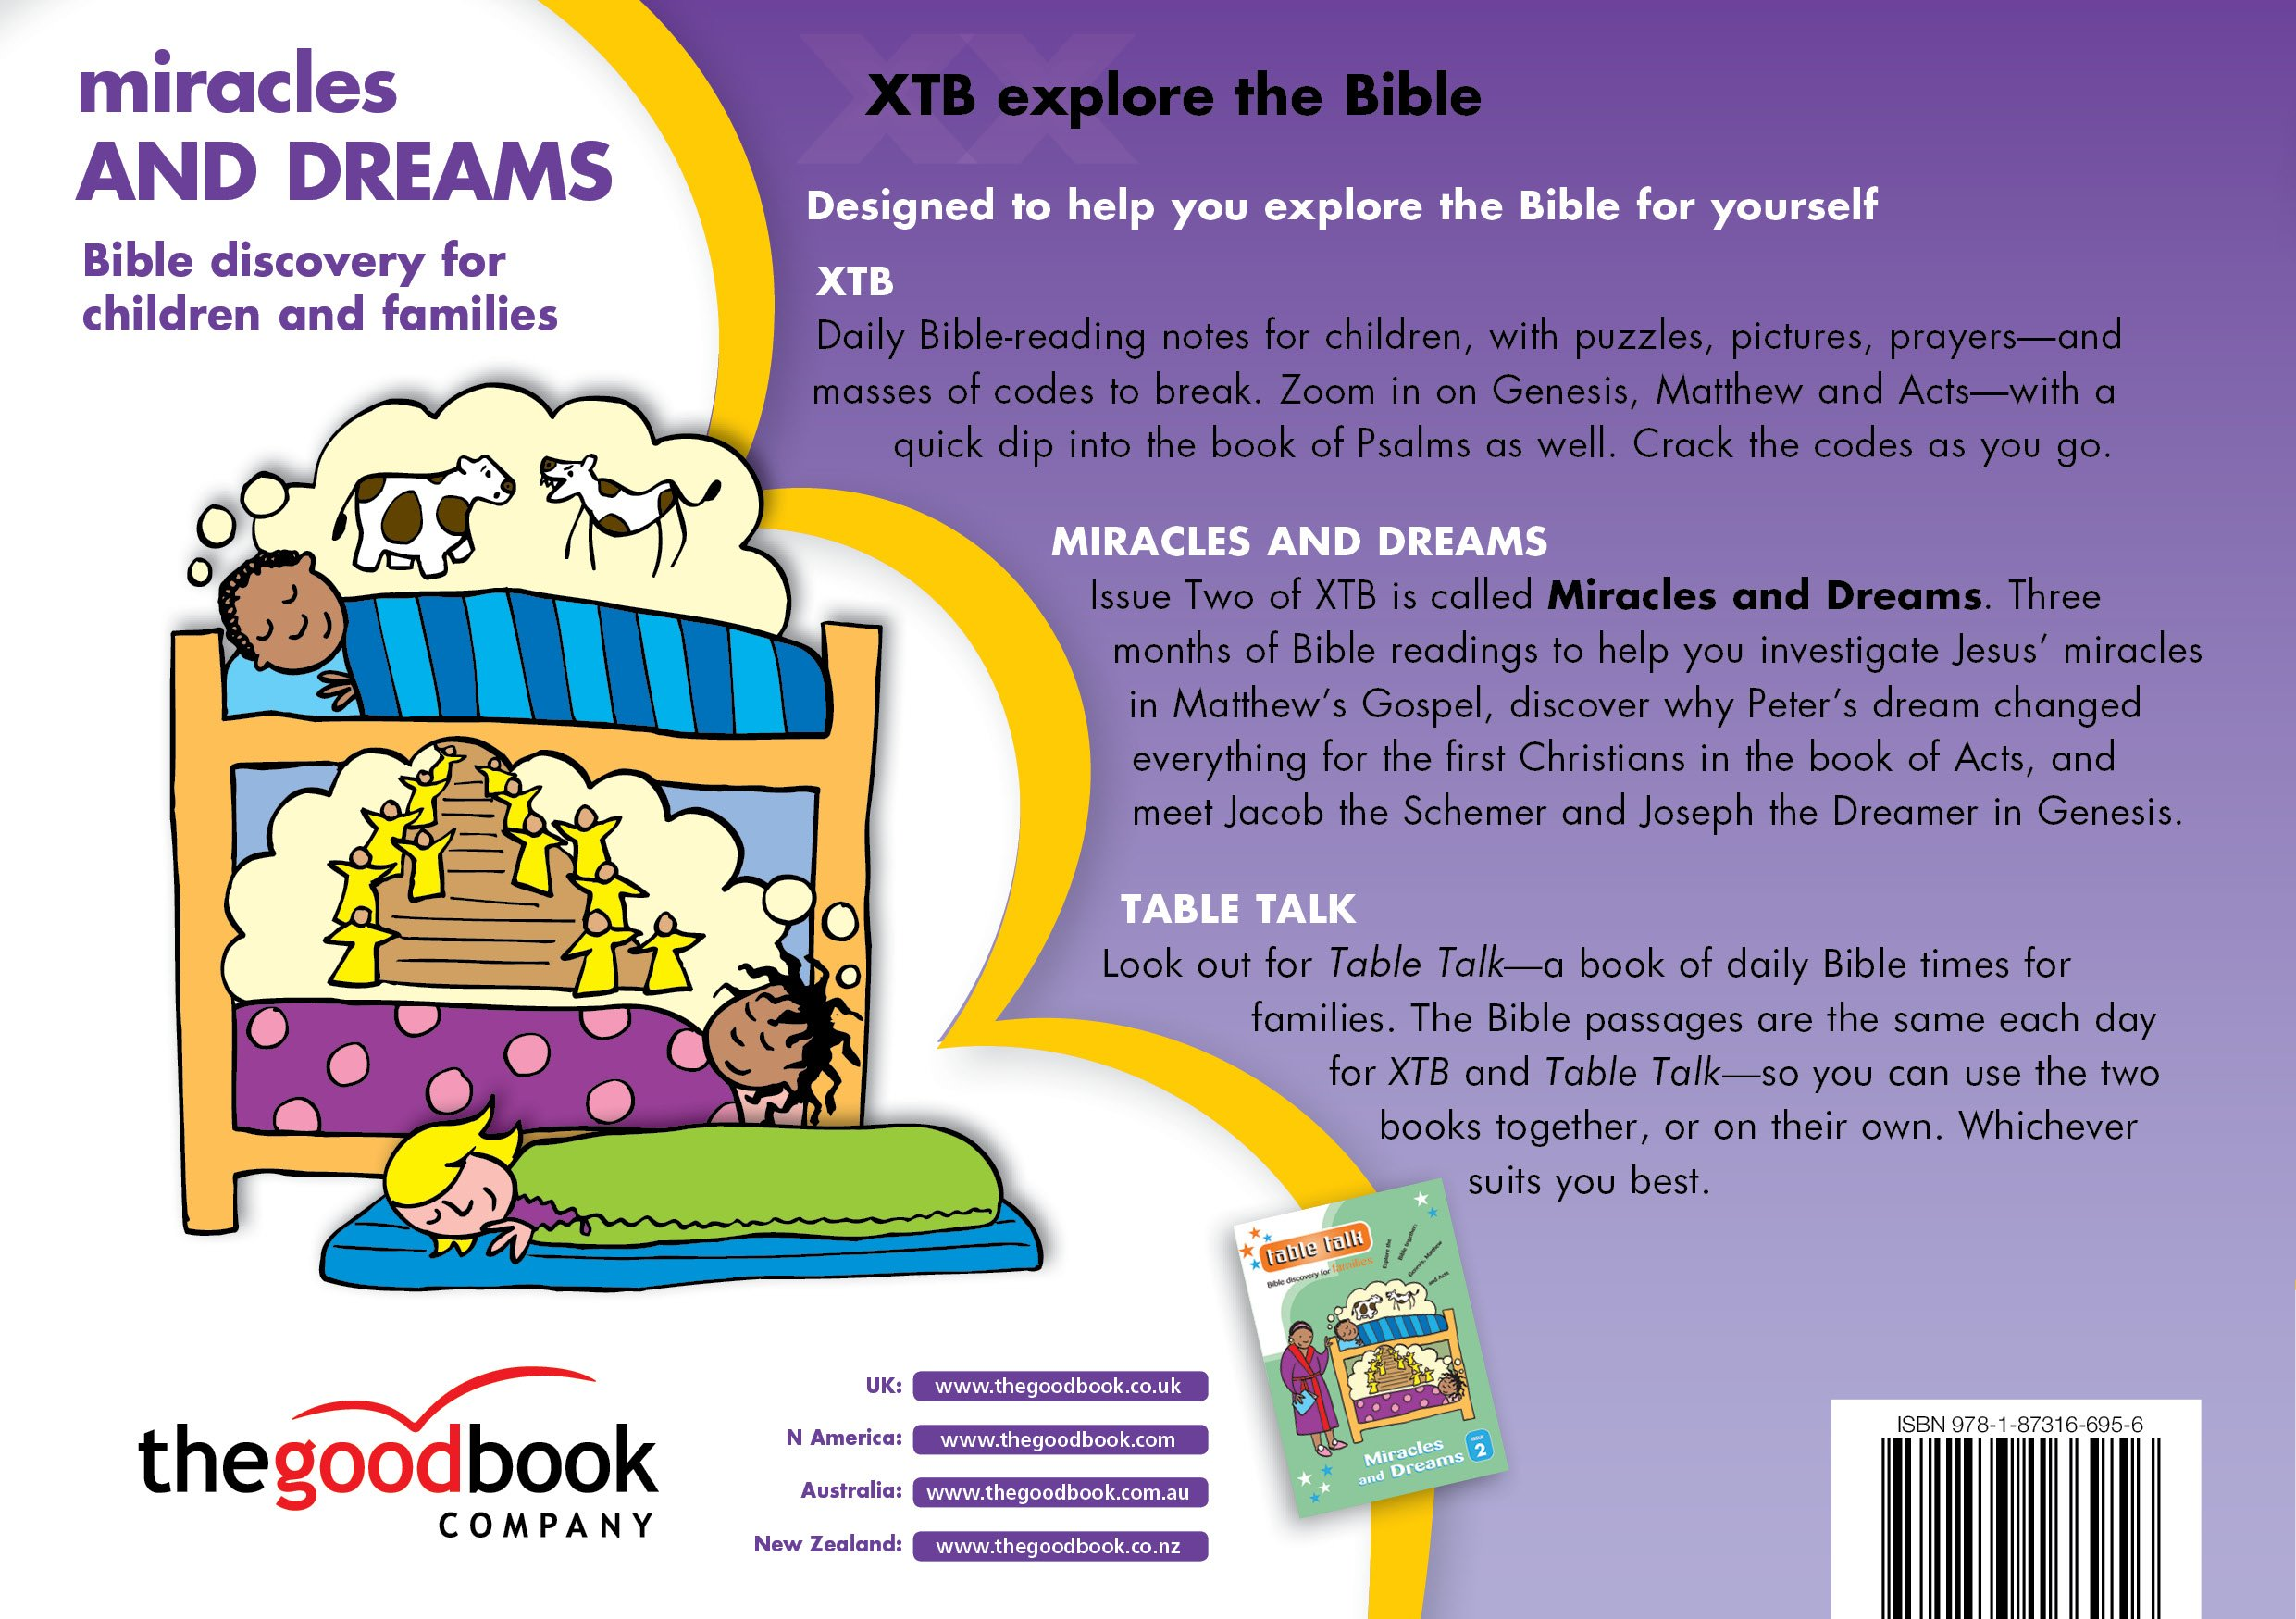 xtb 2 miracles u0026 dreams bible discovery for children amazon co